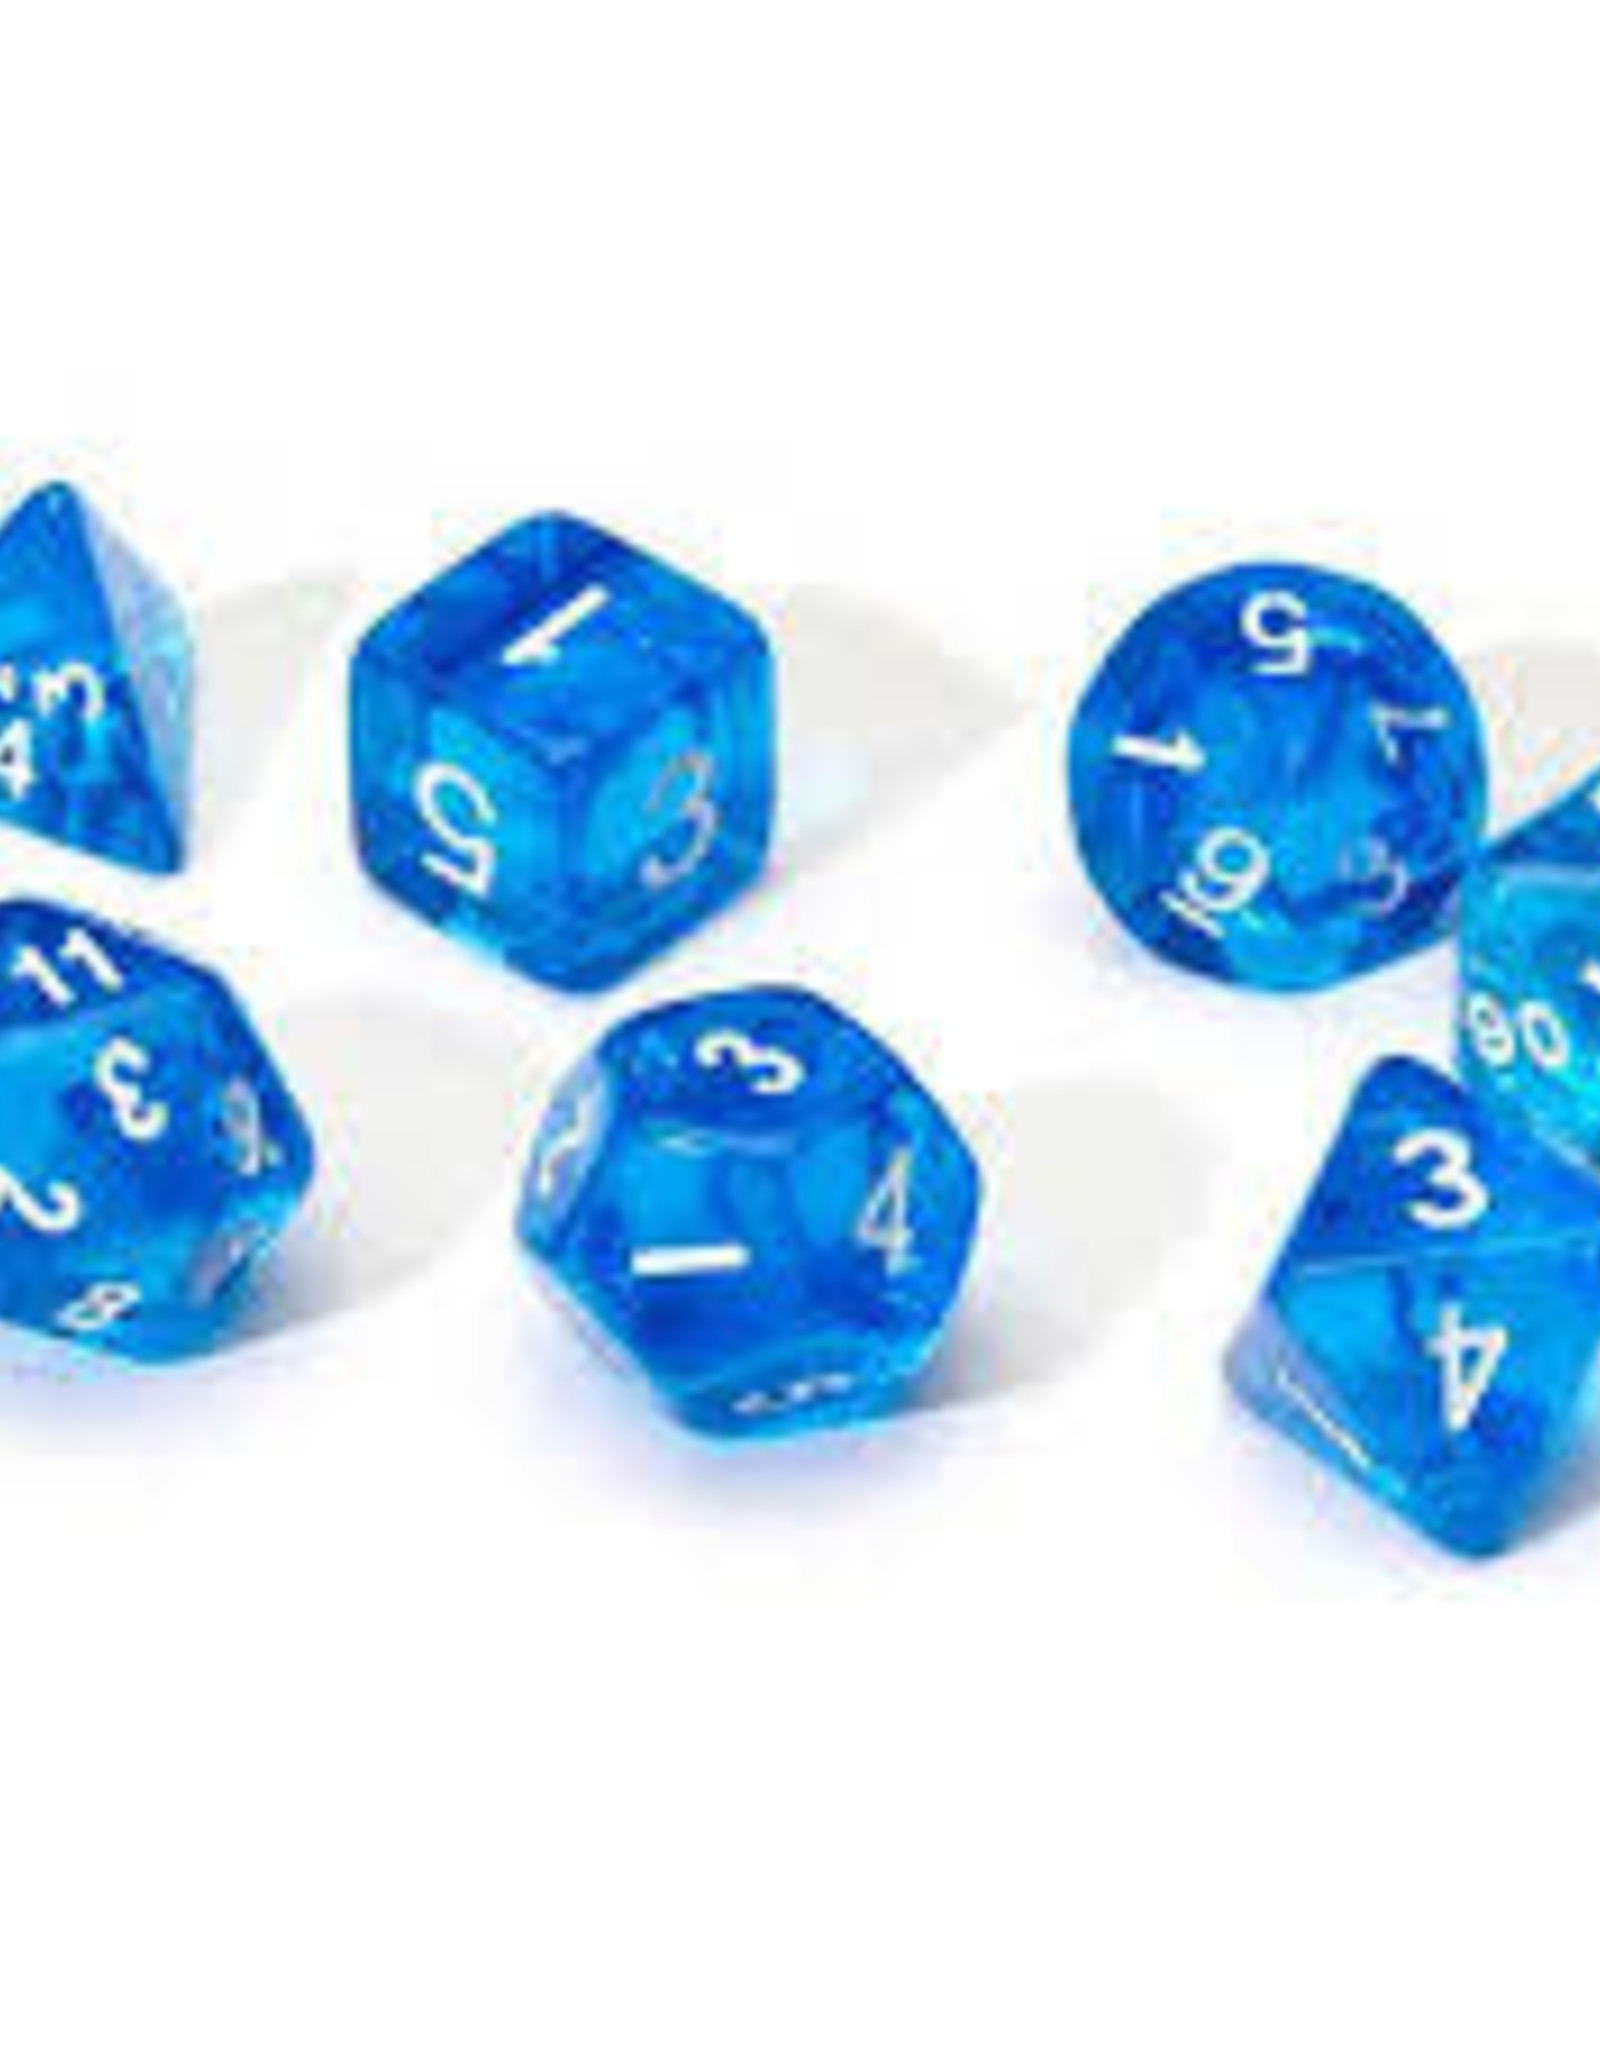 Chessex Dice - 7pc Blue & White